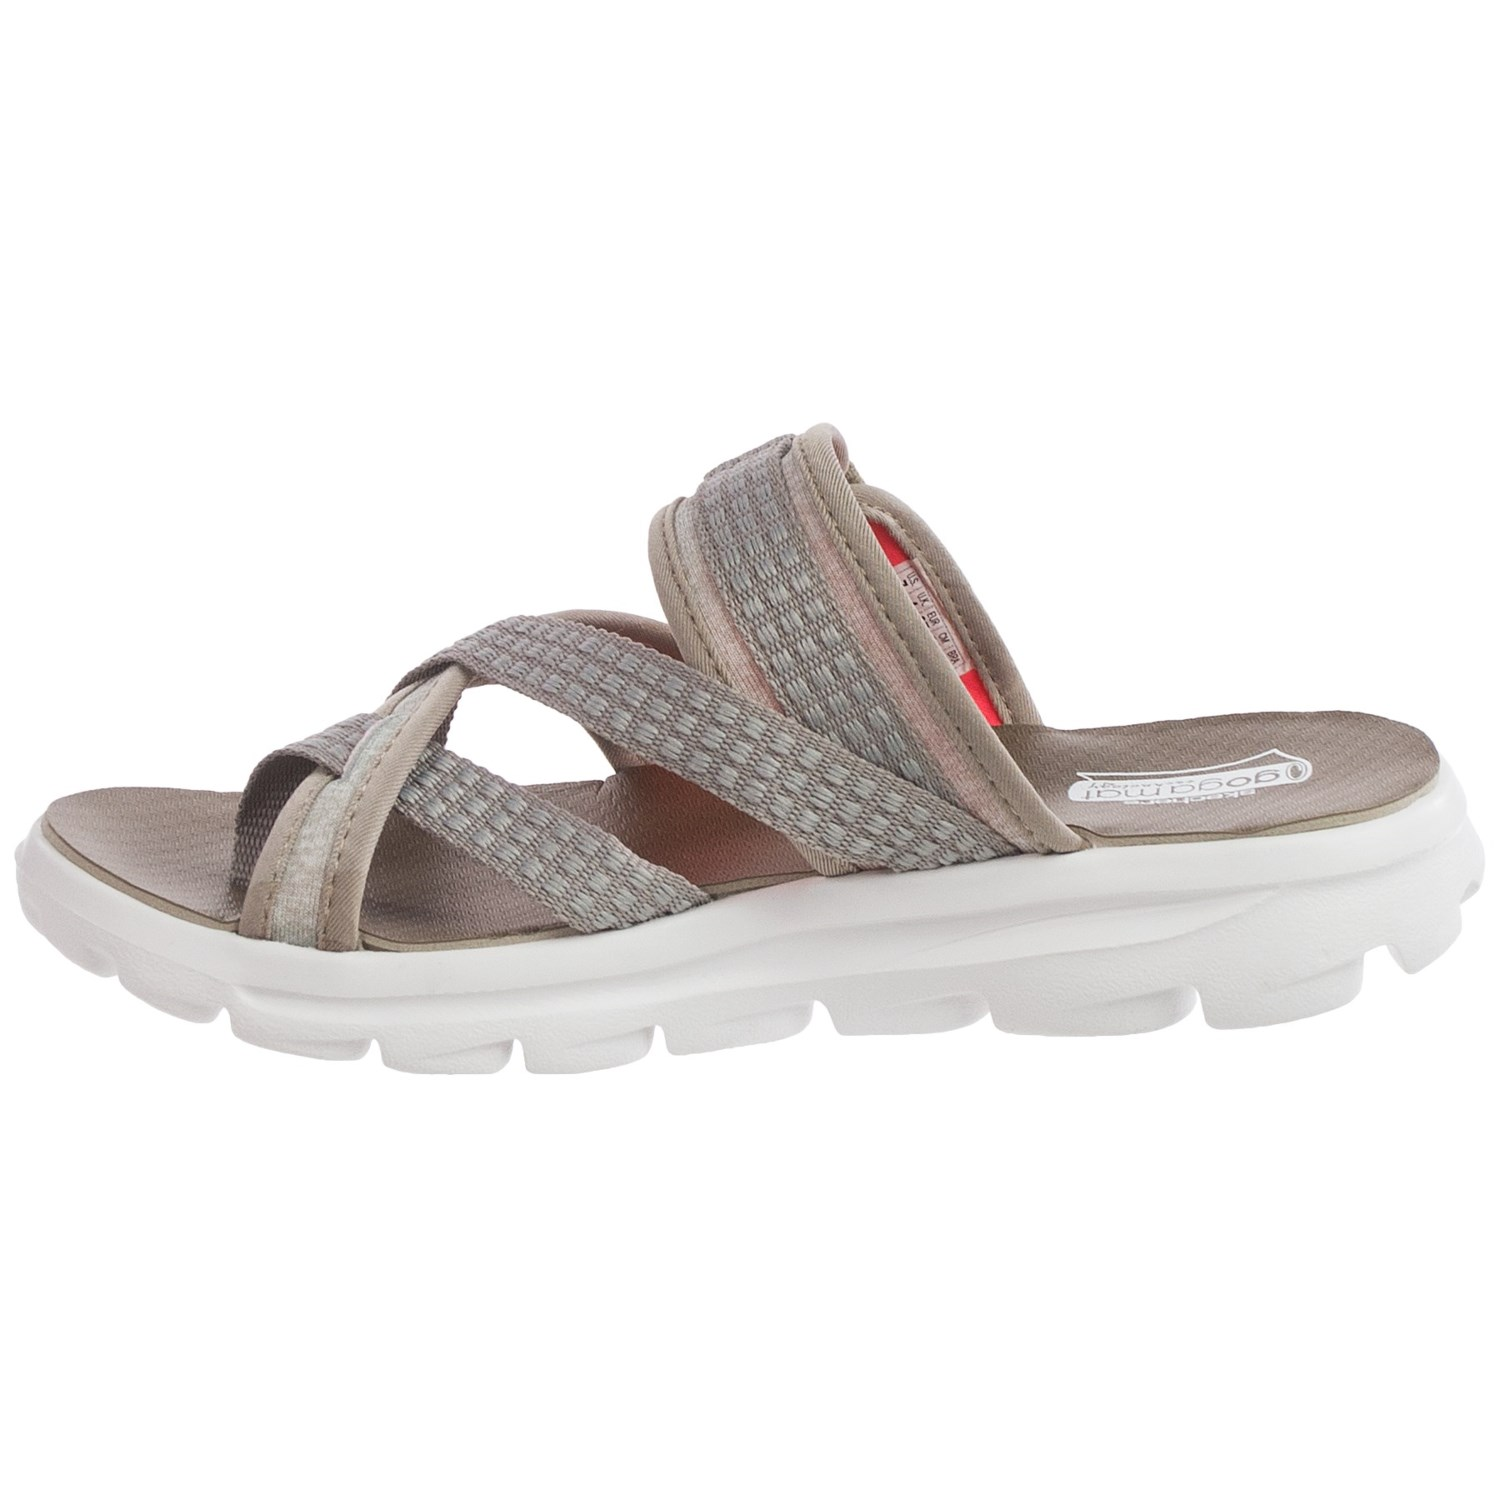 Skechers Womens Holiday Shoes Sale: Save up to 45% Off! Shop harishkr.ml's huge selection of Skechers Womens Shoes, including GOwalk, D'Lites, Shape Ups, and more - Over styles available. FREE Shipping and Exchanges, and a % price guarantee.